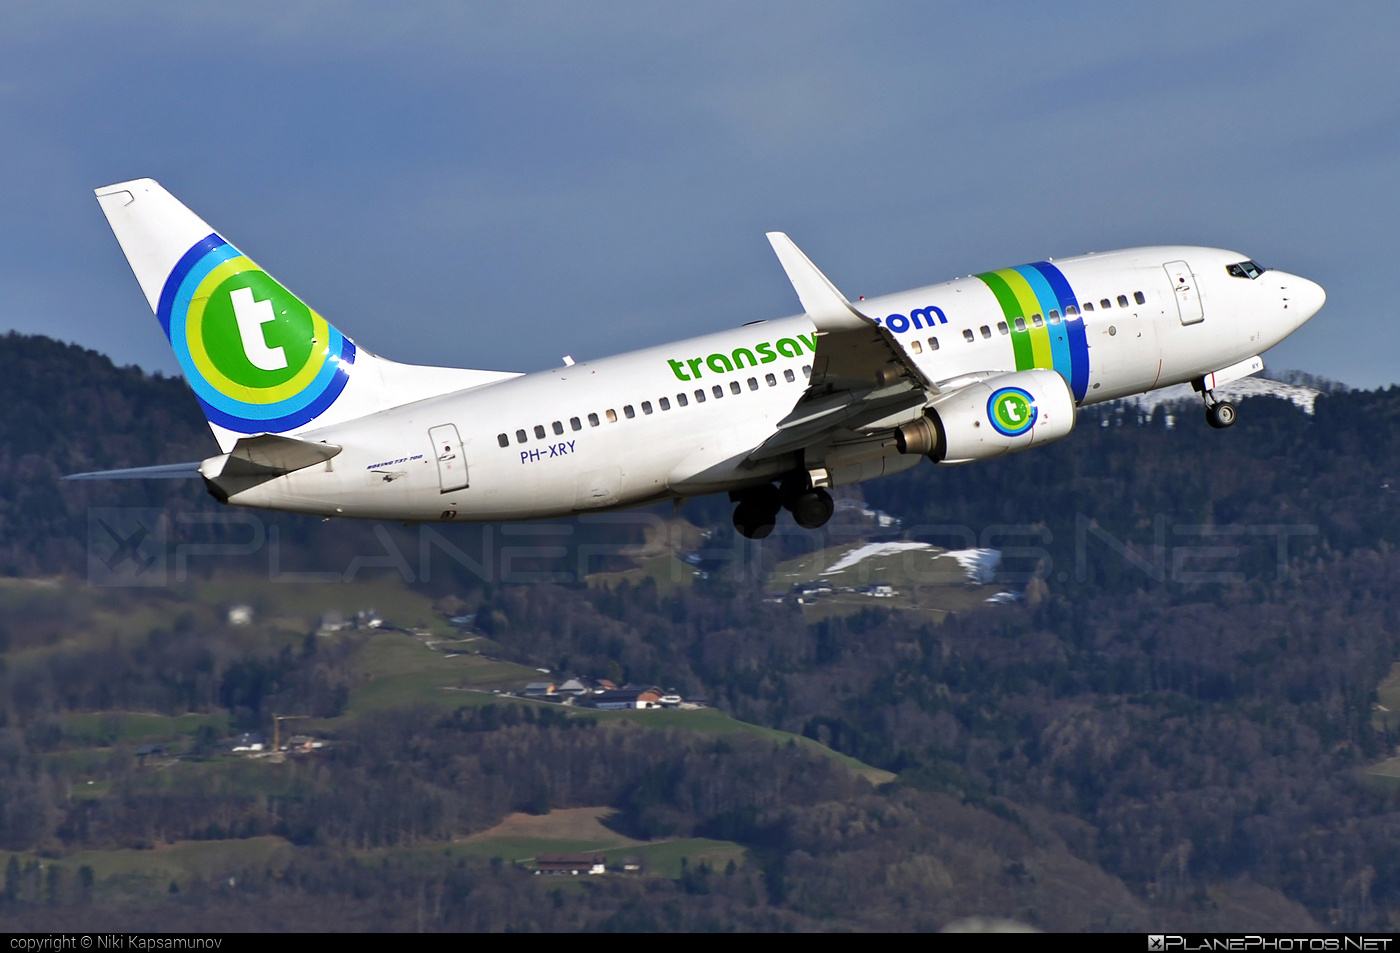 Boeing 737-700 - PH-XRY operated by Transavia Airlines #b737 #b737nextgen #b737ng #boeing #boeing737 #transavia #transaviaairlines